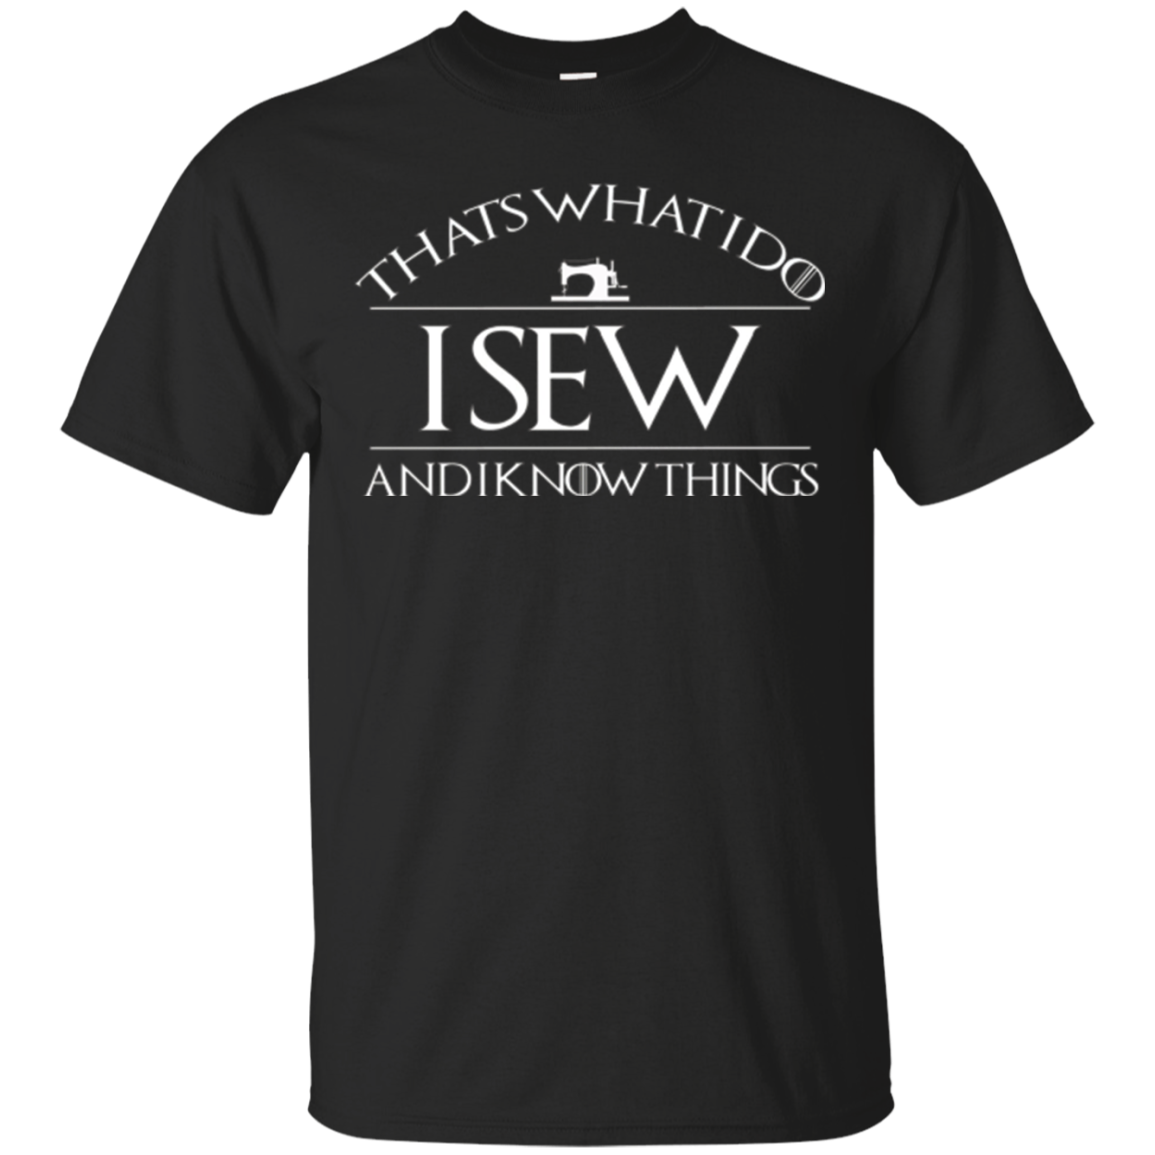 Thats What I Do I Sew and I Know Things T Shirt